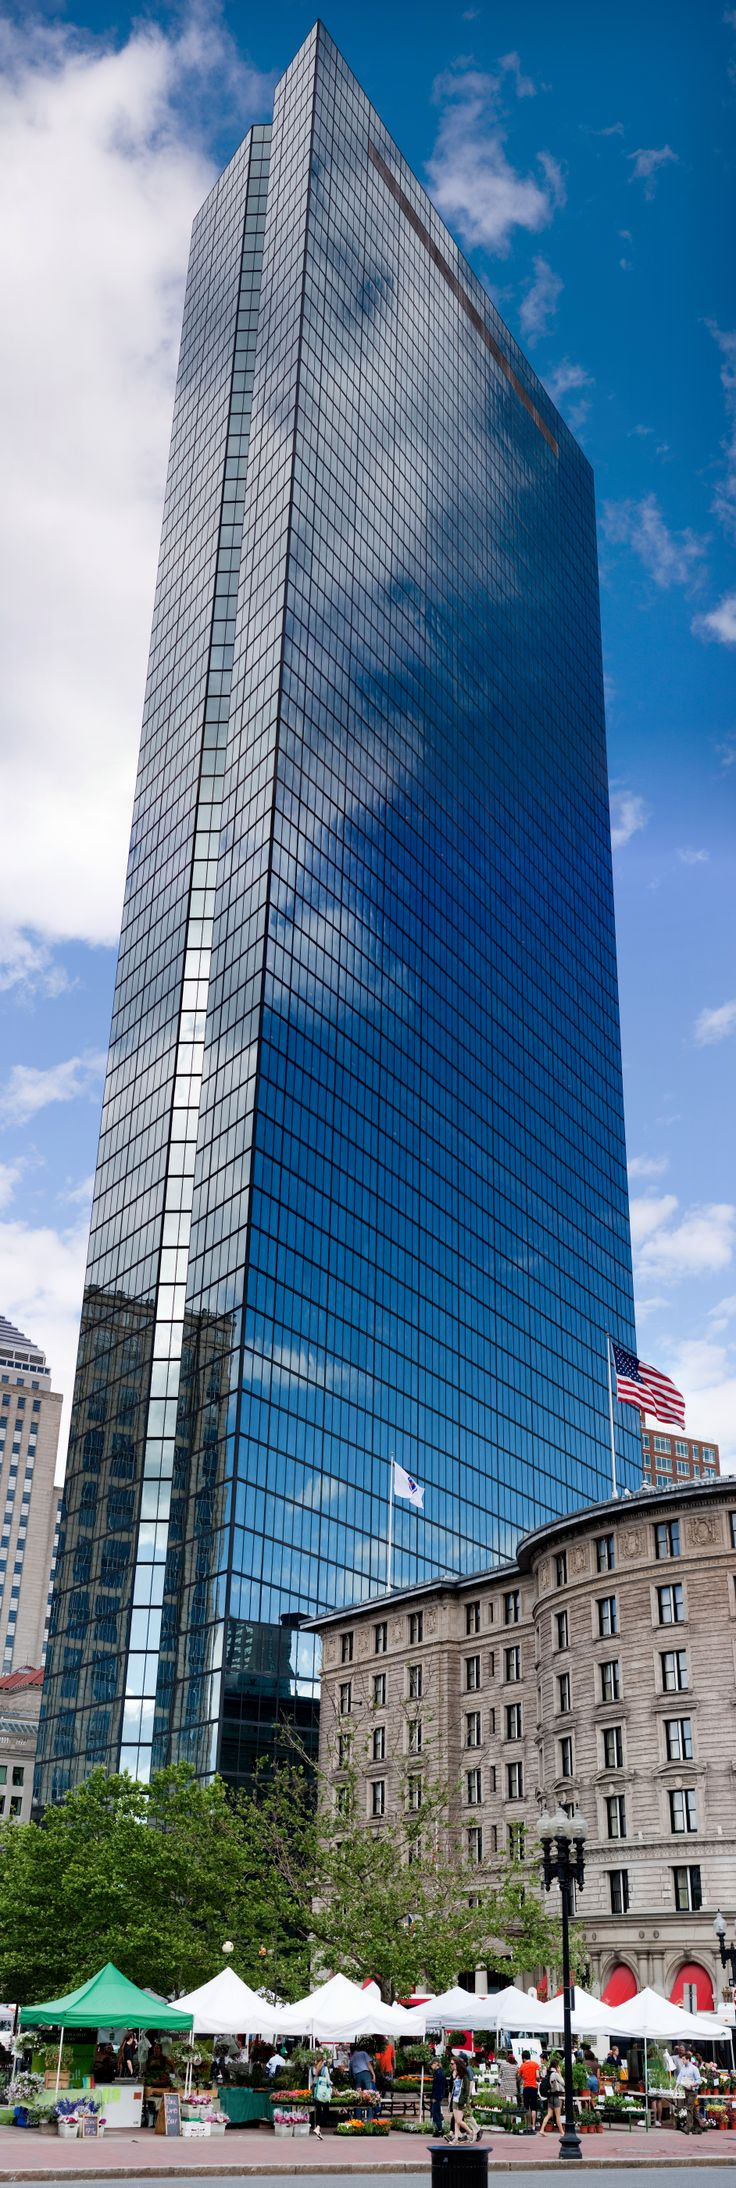 John Hancock Building. NEW YORK CITY